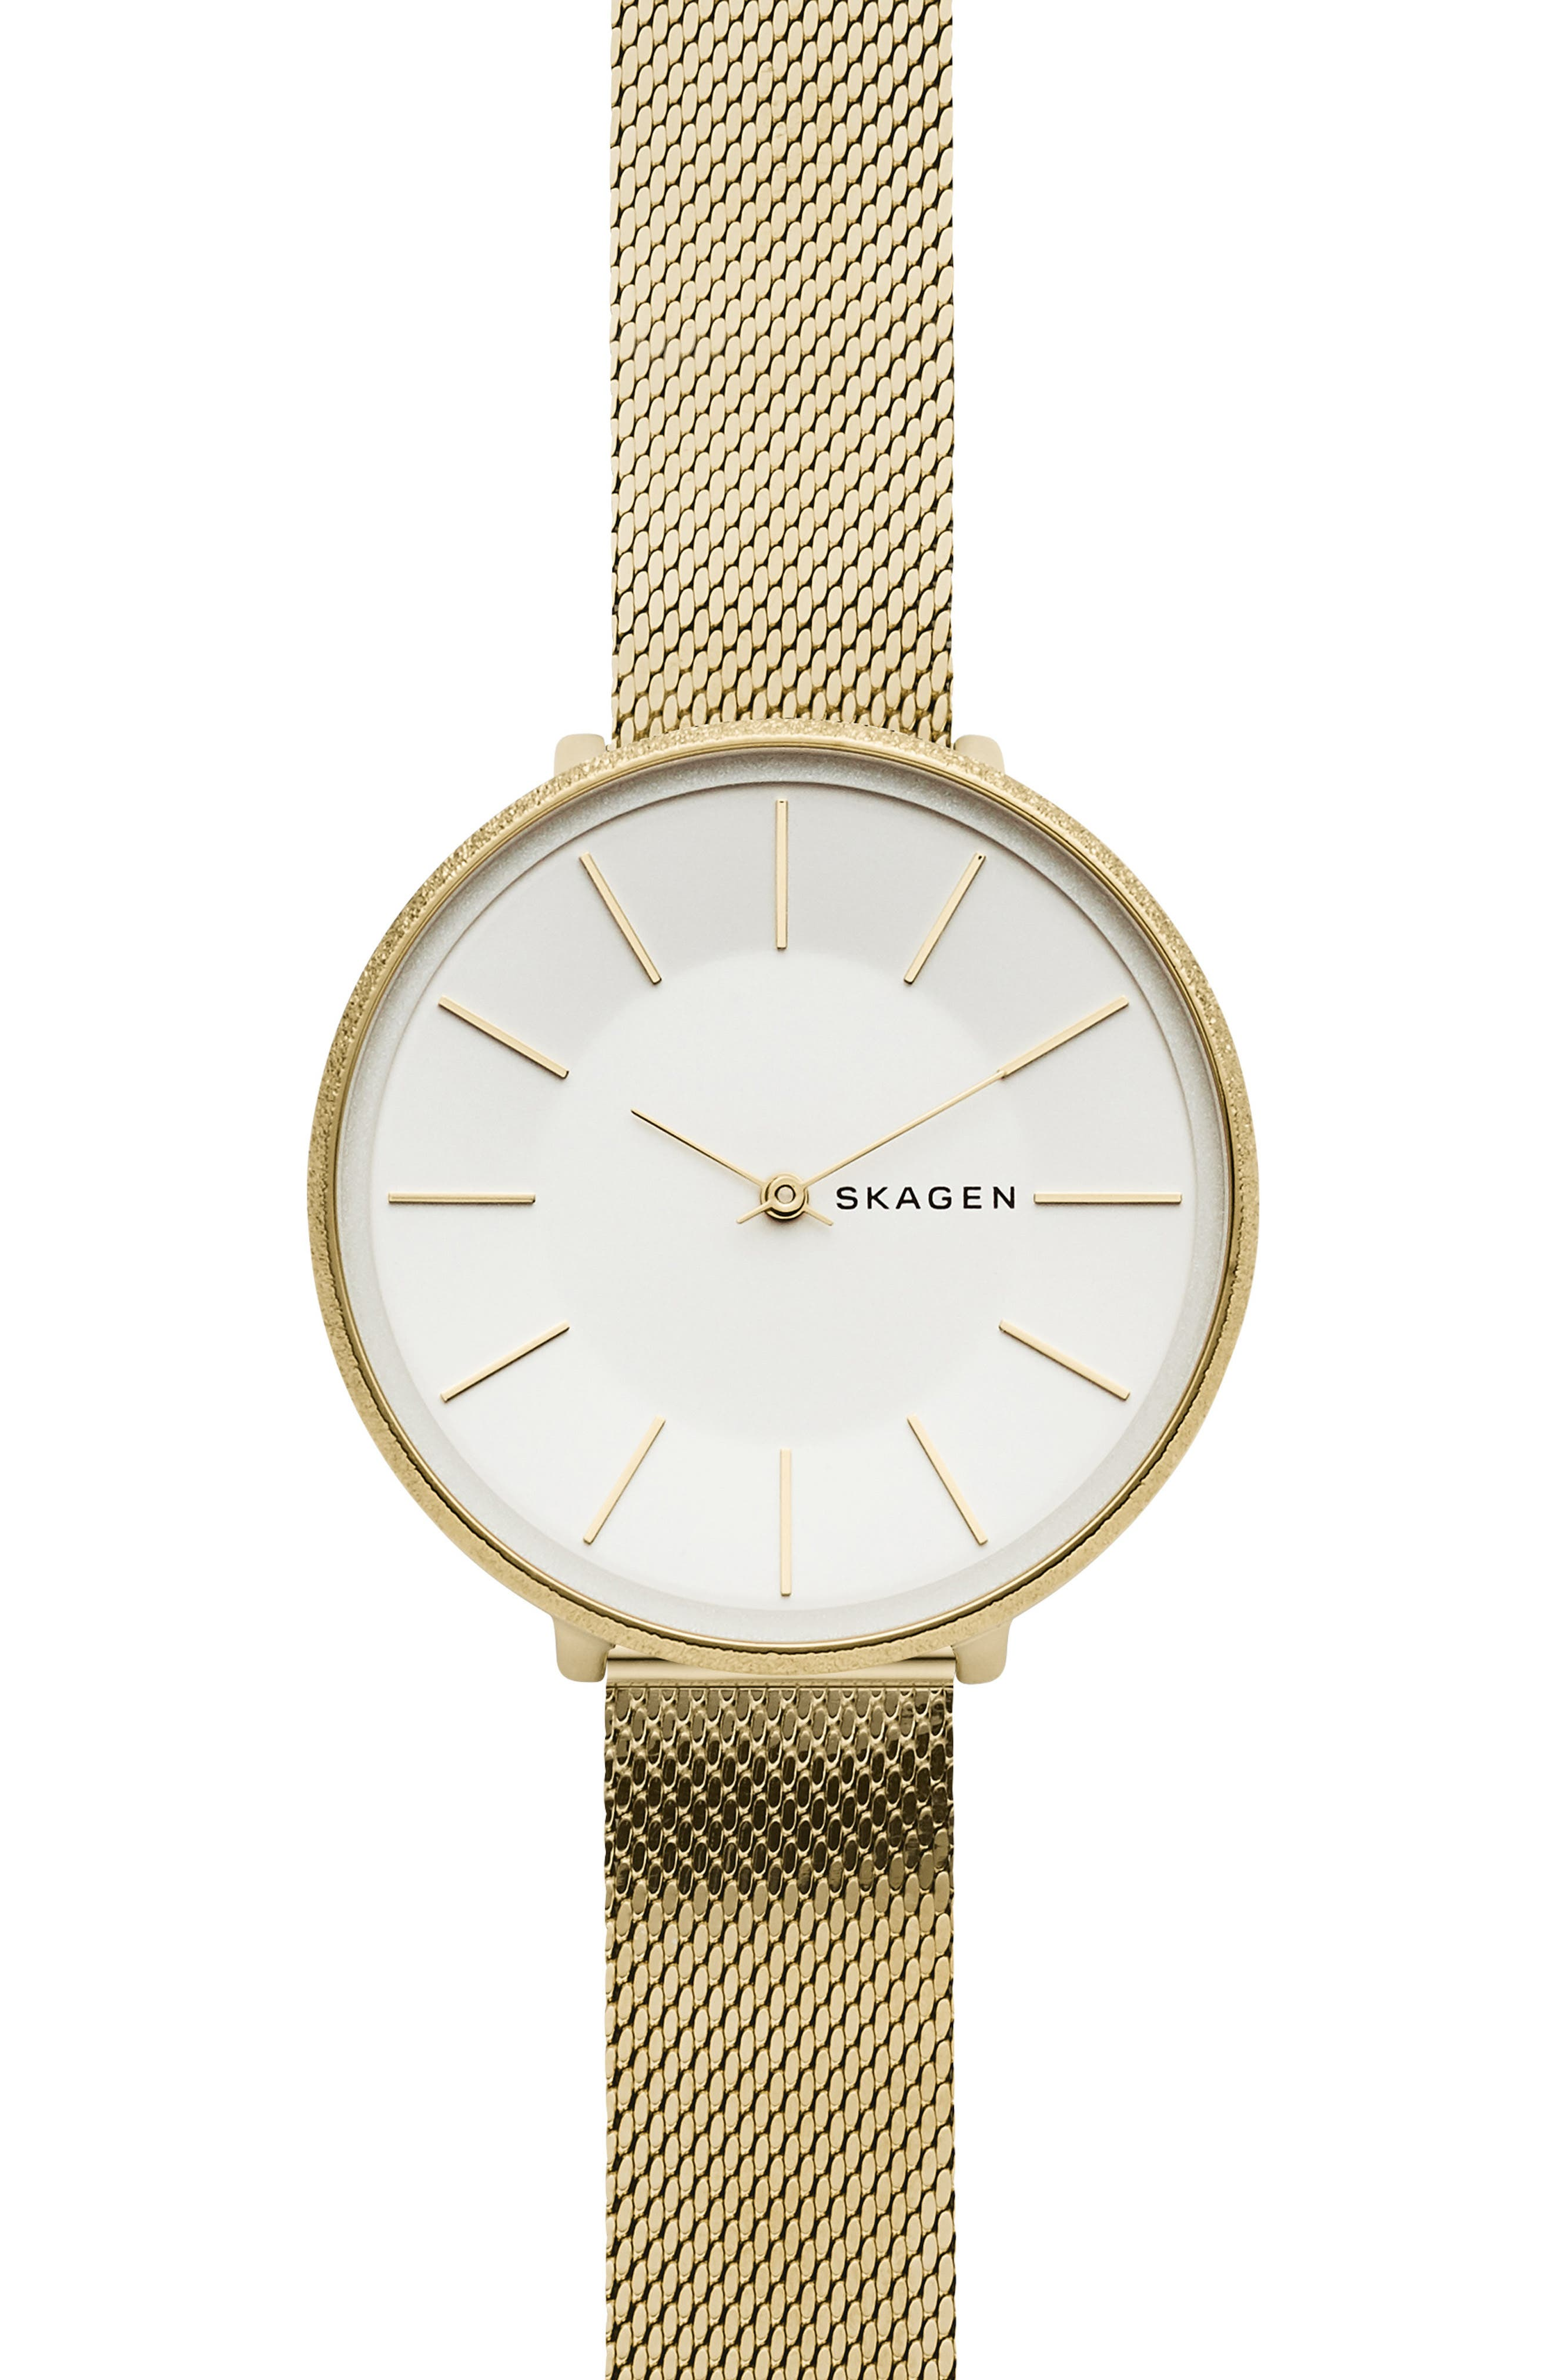 SKAGEN KAROLINA GOLD-TONE STAINLESS STEEL MESH BRACELET WATCH 38MM